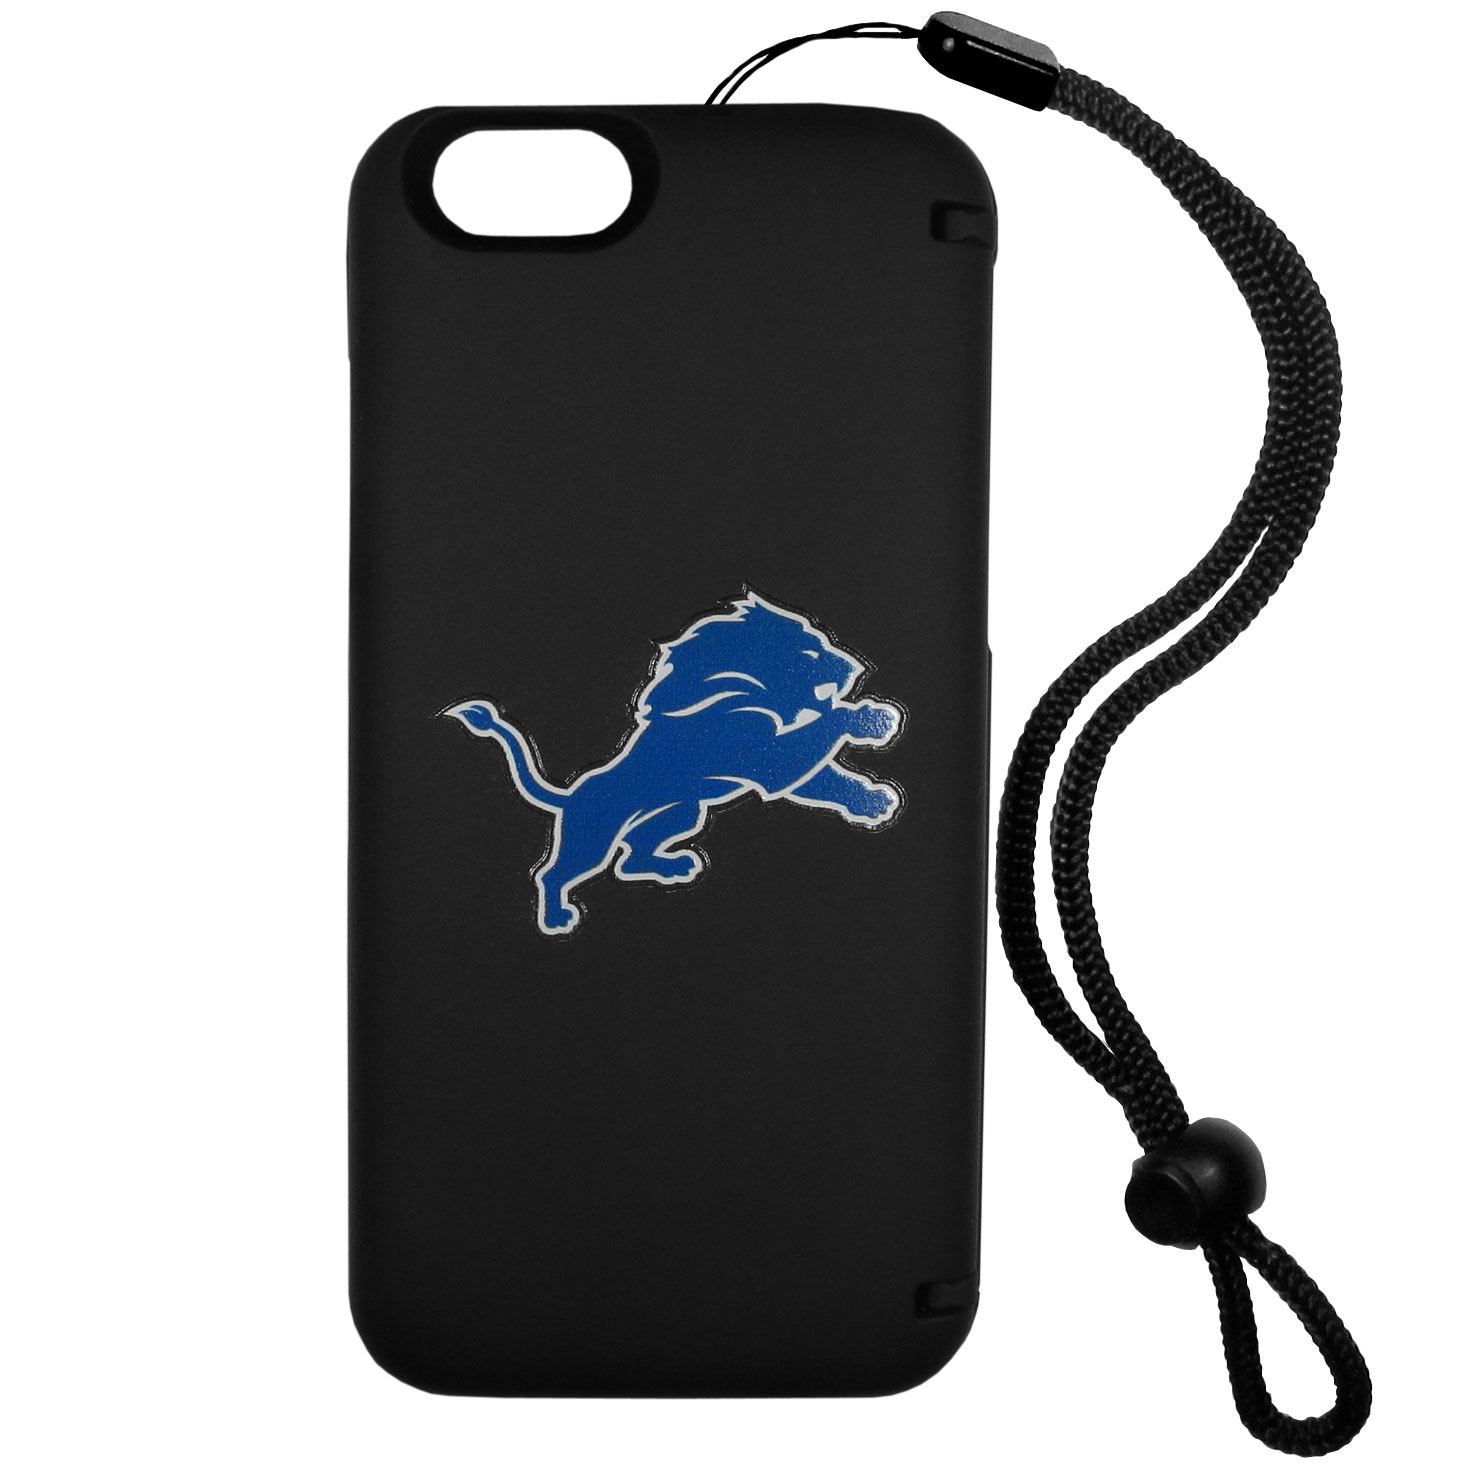 Detroit Lions iPhone 6 Everything Case - This case really does have everything but the kitchen sink! The hidden compartment lets you keep your cards, money and tickets to the big game safe and secure and has a compact mirror so you can make sure your game face is ready to go. It also comes with a kickstand to make chatting and watching videos a breeze. The wrist strap allows you to travel with ease with your everything case. If that's not enough, it also comes with the Detroit Lions logo printed in expert detail on the front.